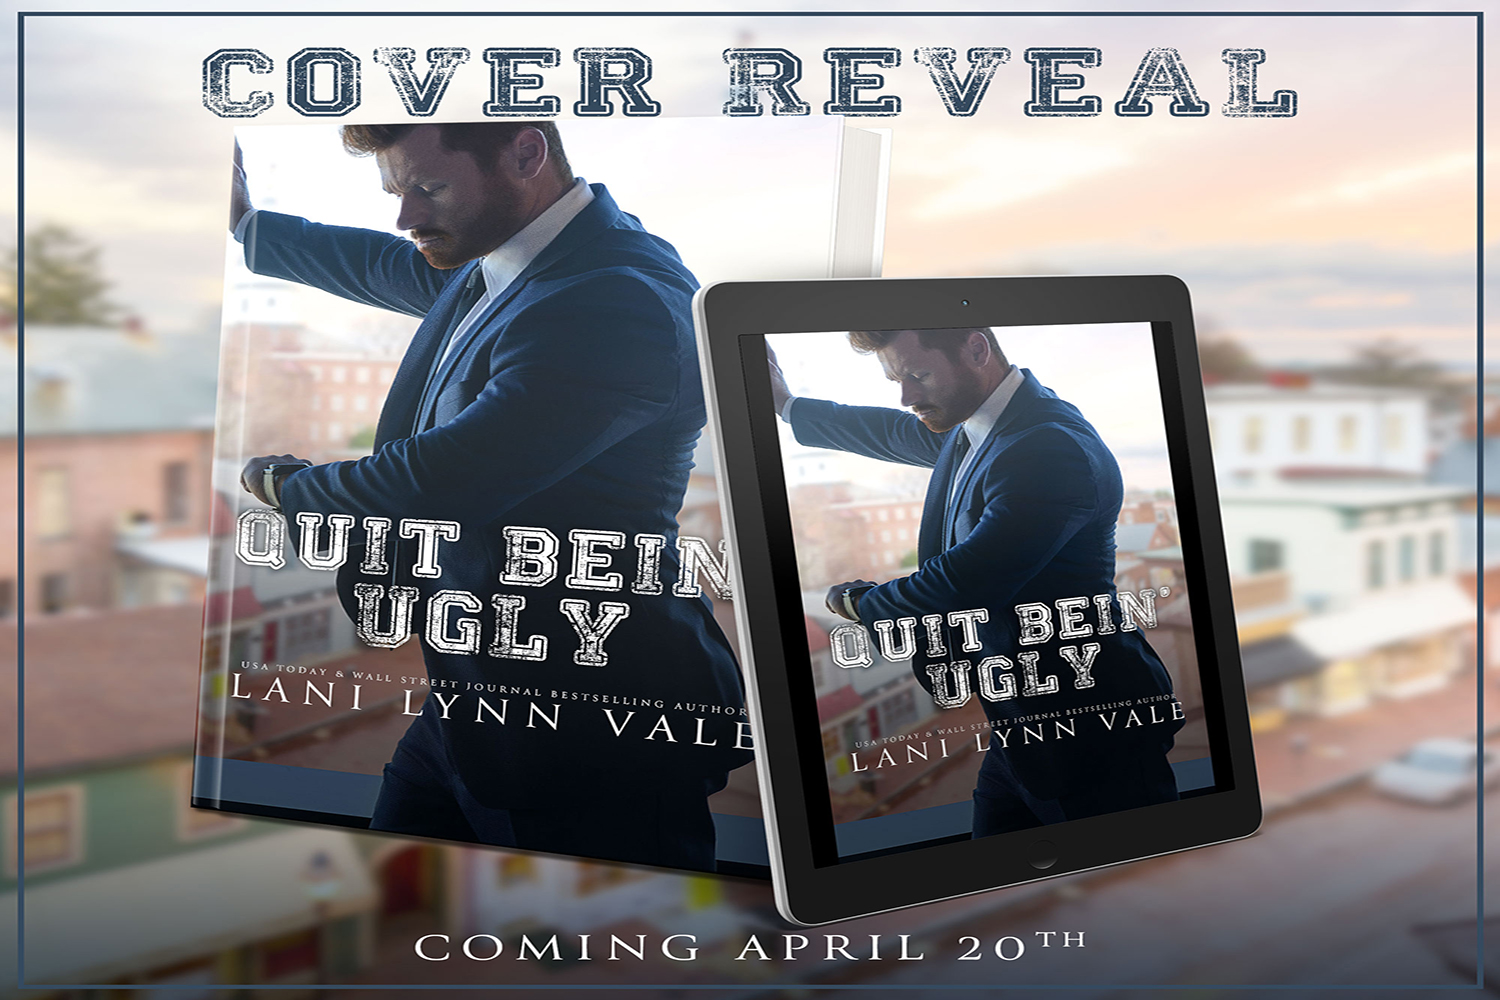 Quit Bein' Ugly by Lani Lynn Vale Cover Reveal